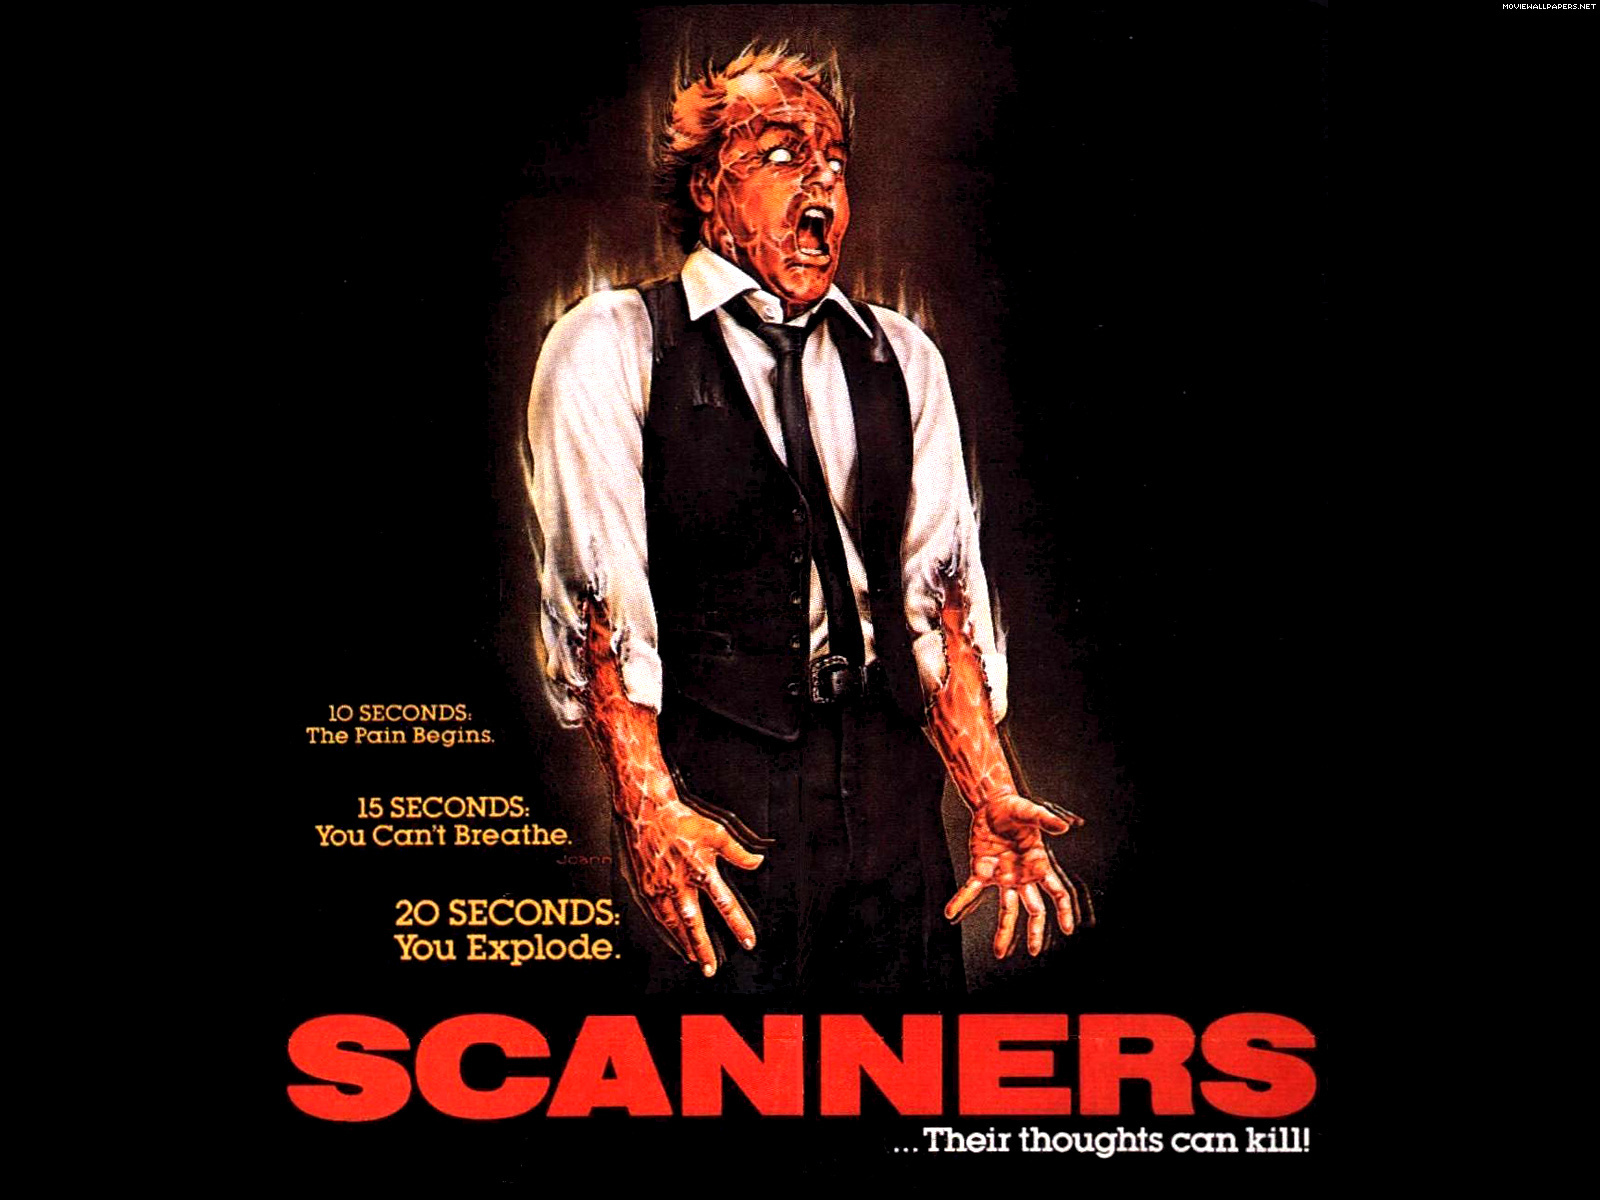 Scanners movies